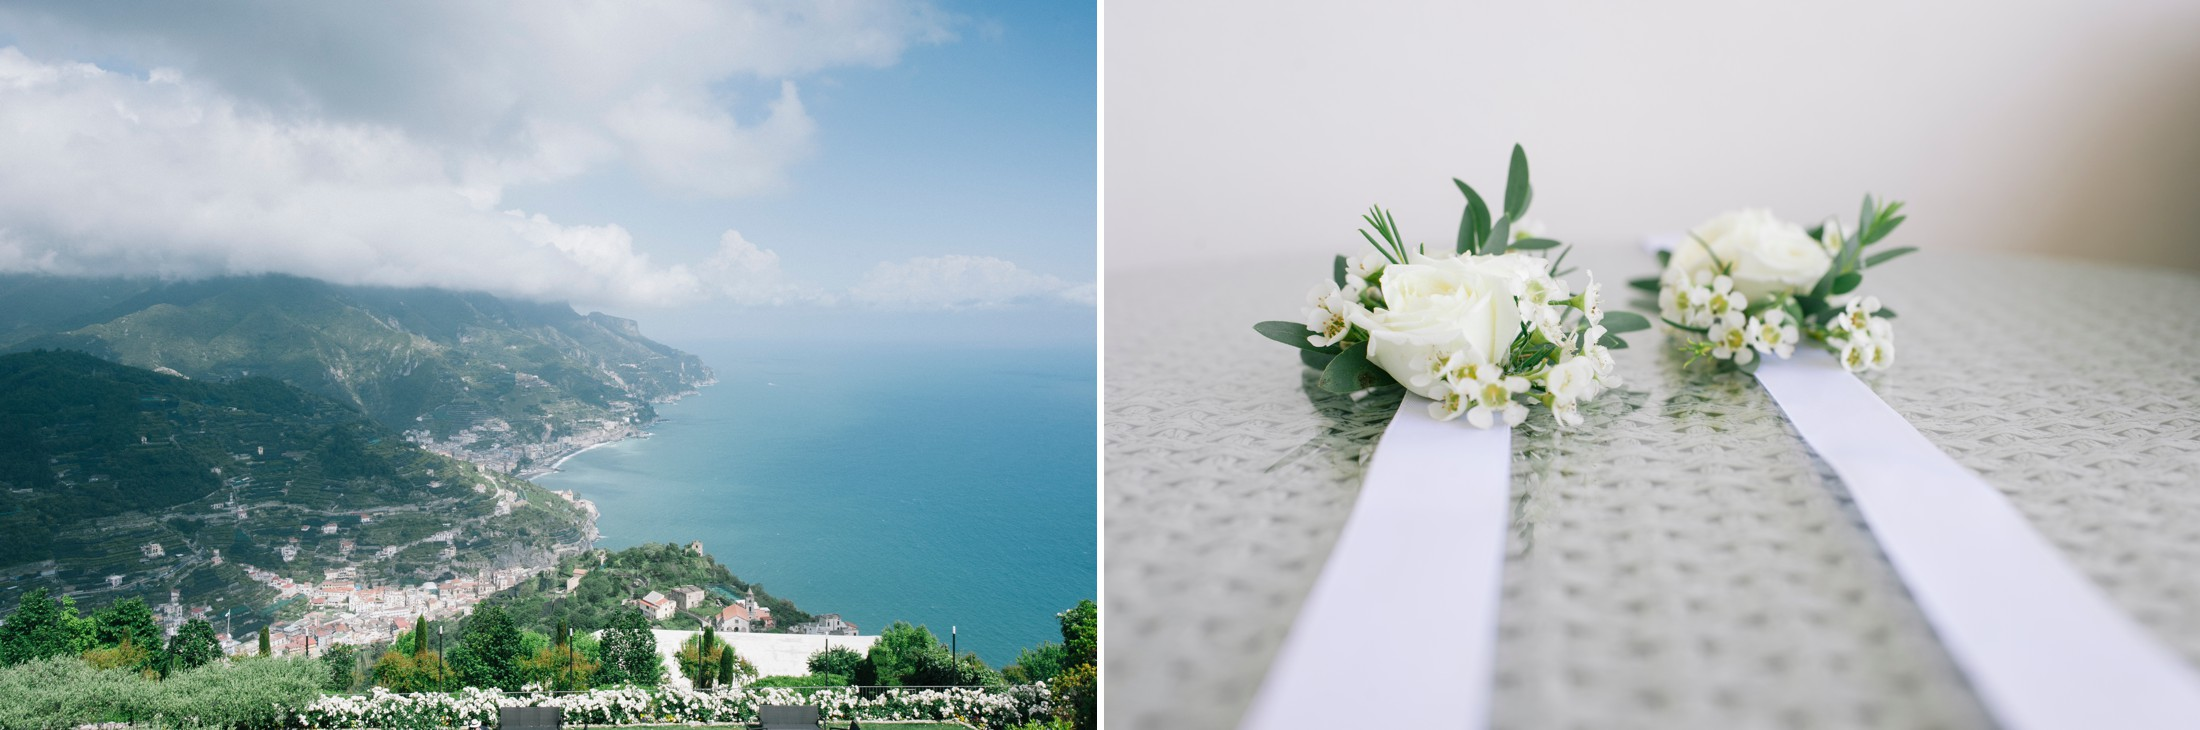 collage ravello view and wedding flowers detail